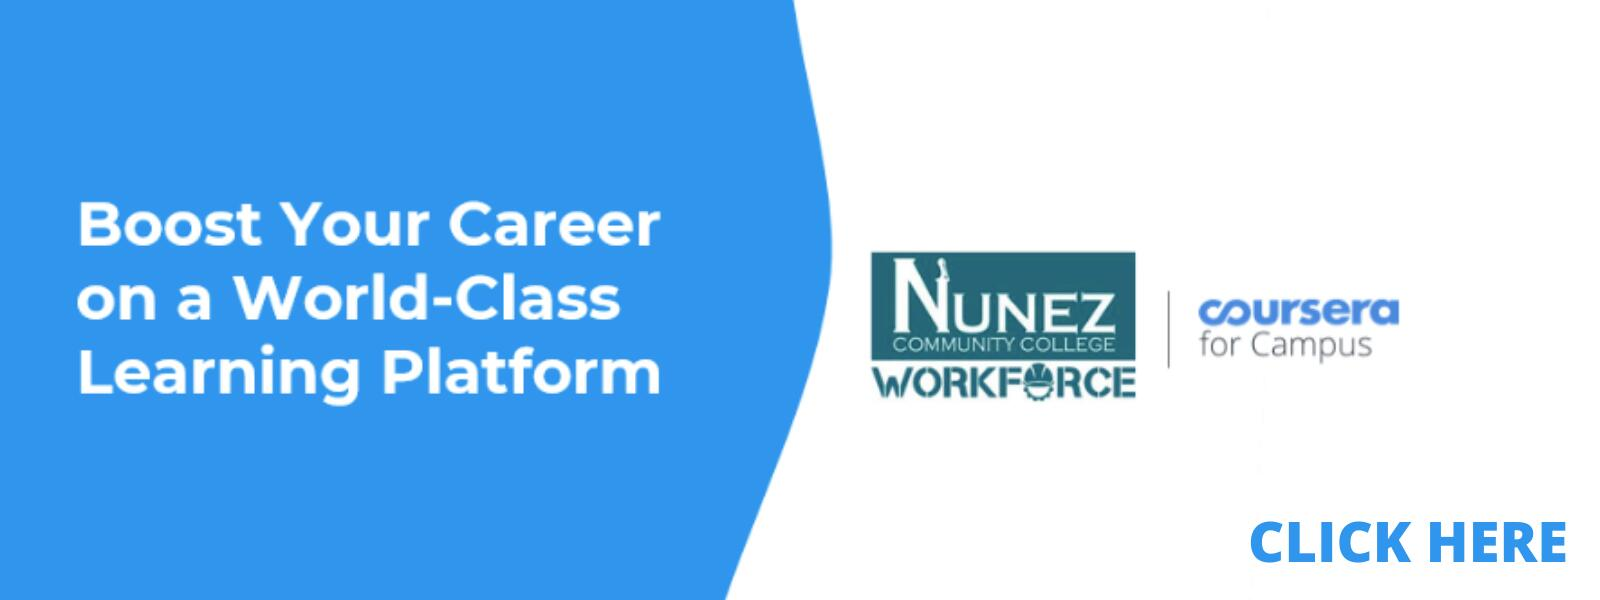 Boost Your Career on a World Class Learning Platform: Nunez Worforce and Coursera - Click Here for More Information